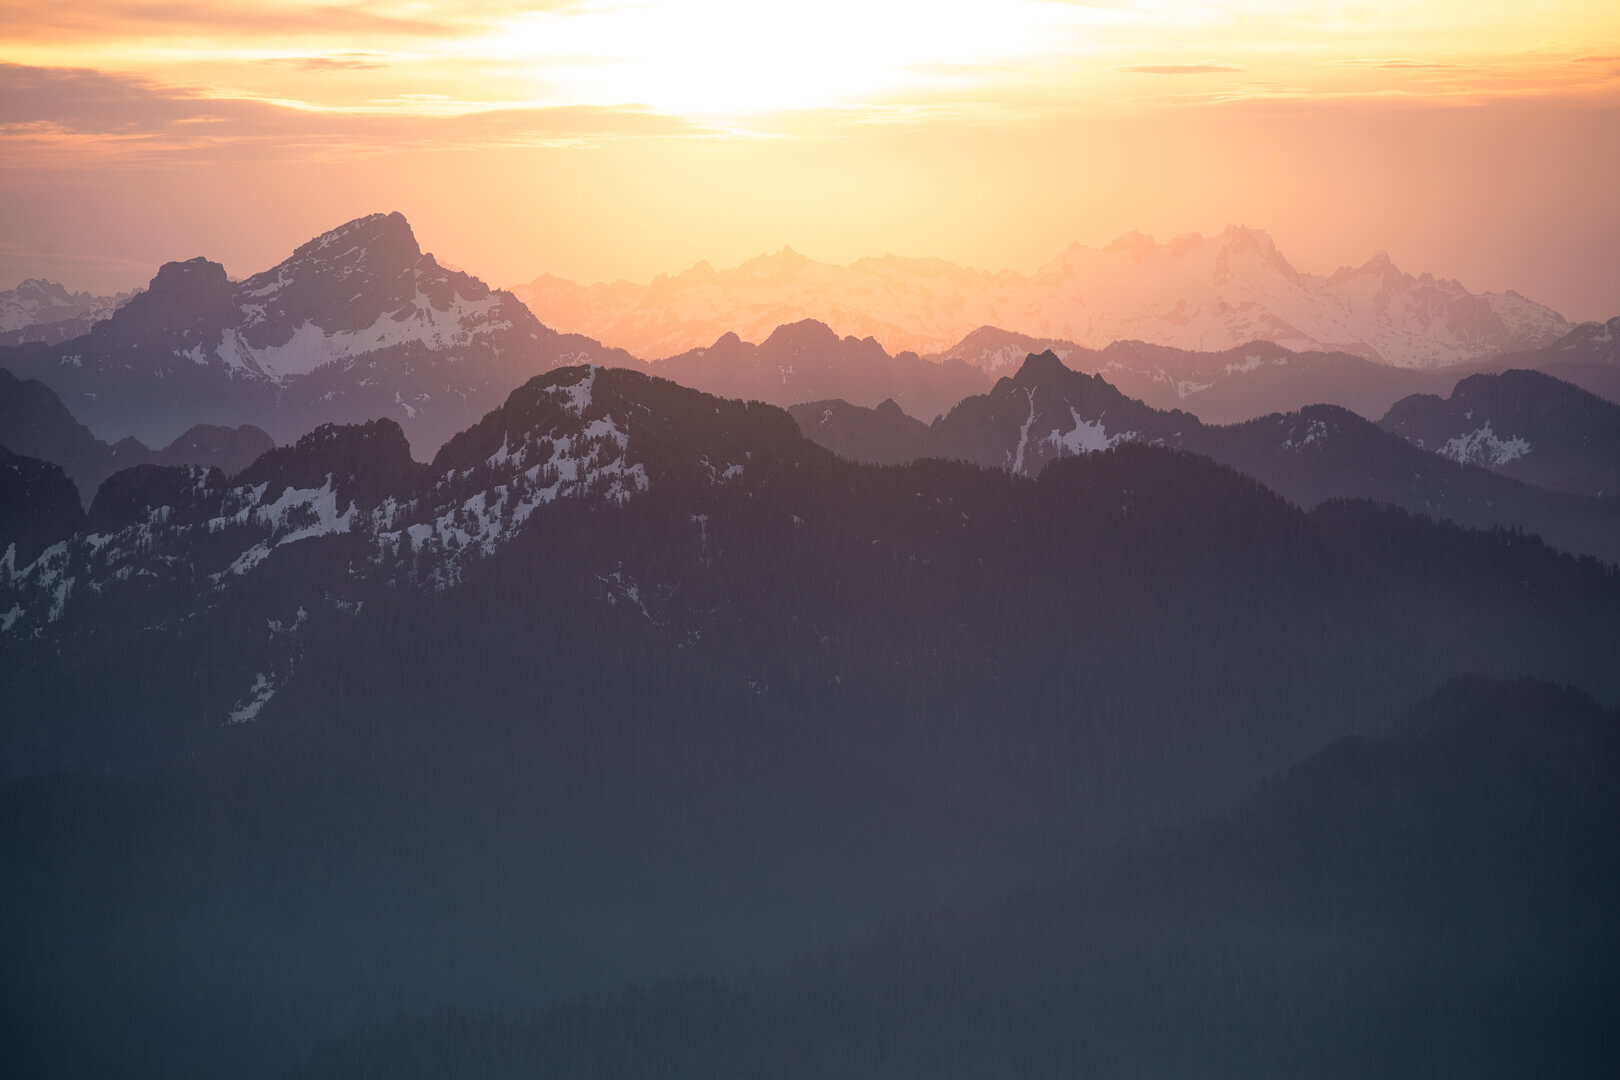 Beautiful sunset views from the Mount Pilchuck fire lookout.